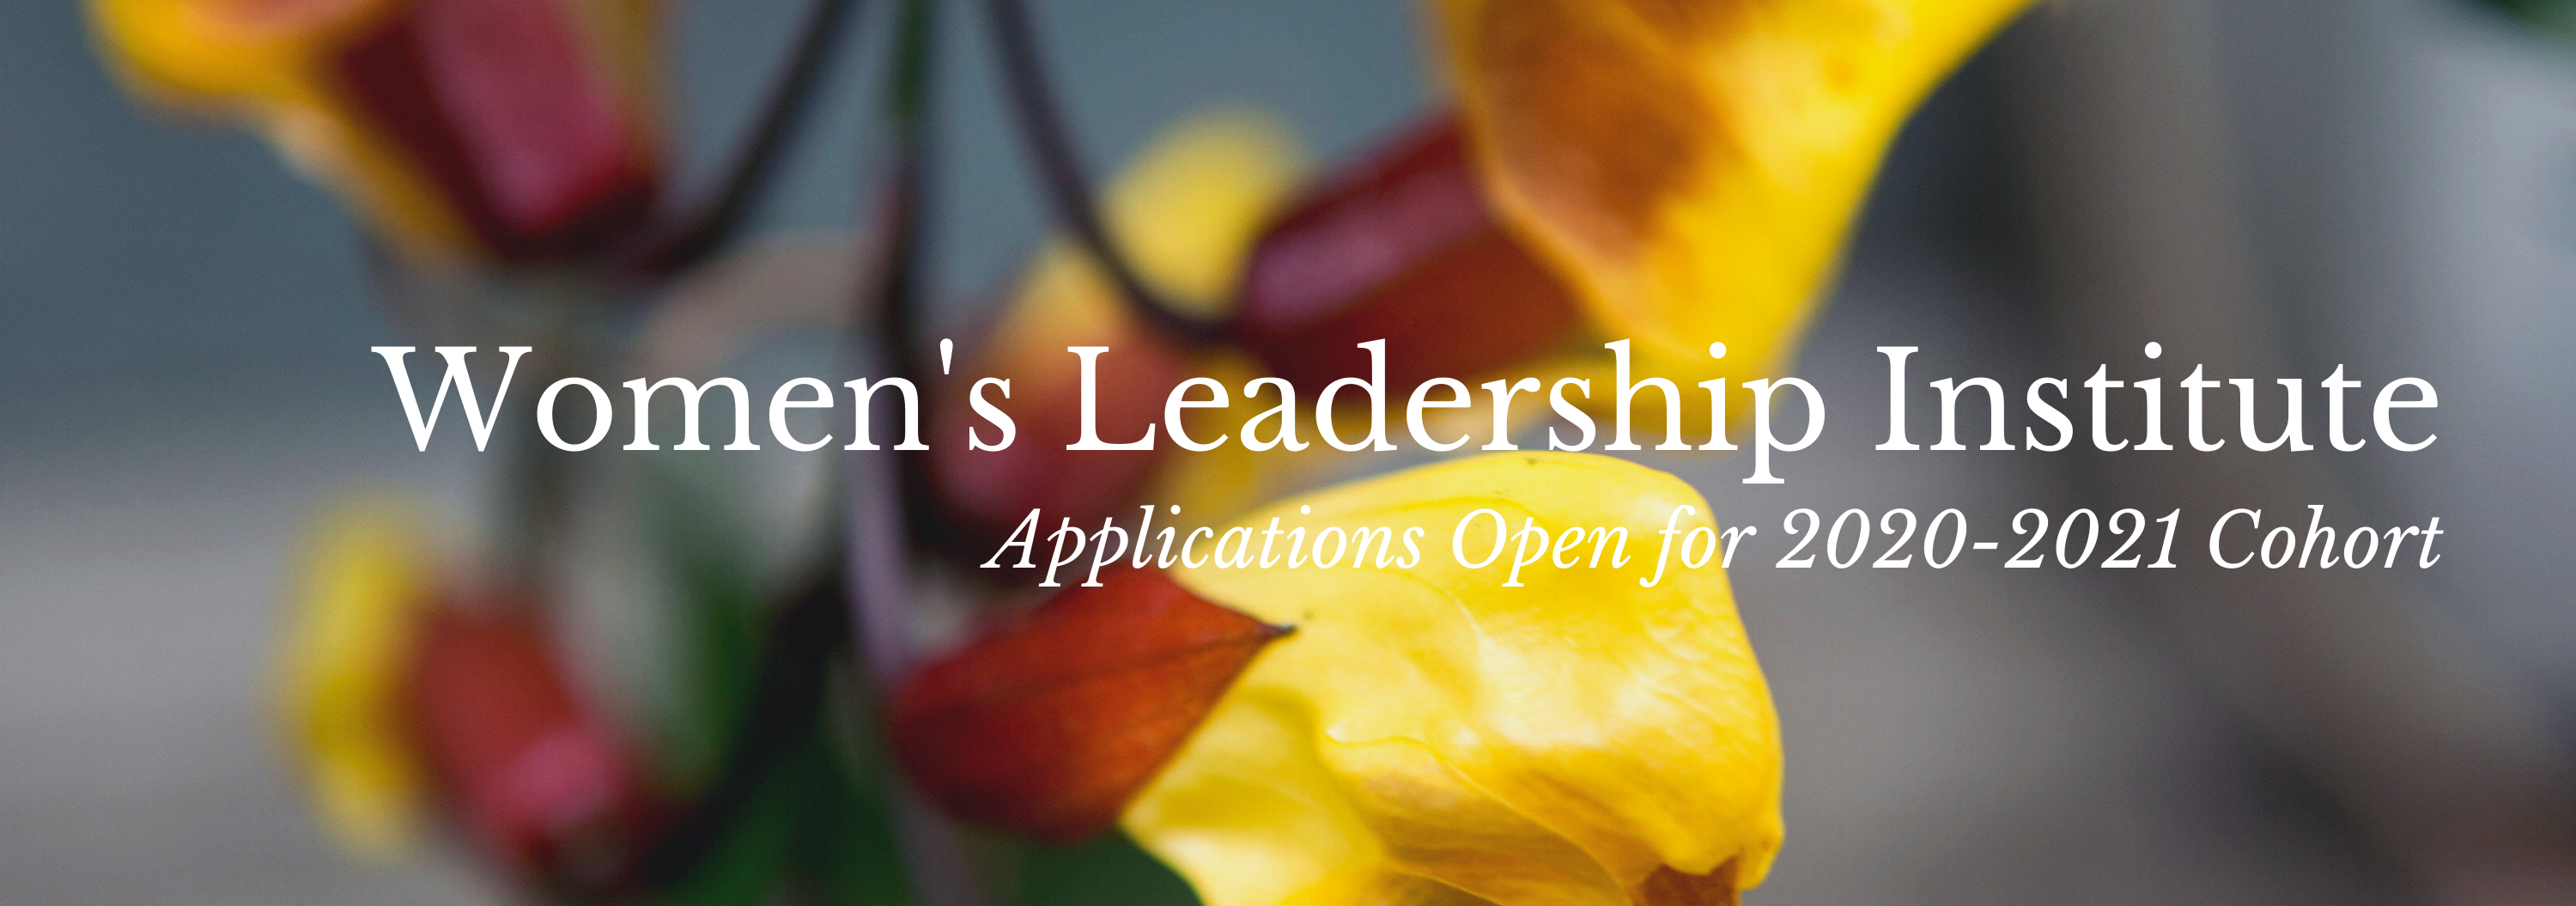 """A maroon and gold flower in soft focus provides the background of the image, with white text against the background that reads, """"Women's Leadership Institute, Applications Open for 2020-2021 Cohort"""""""